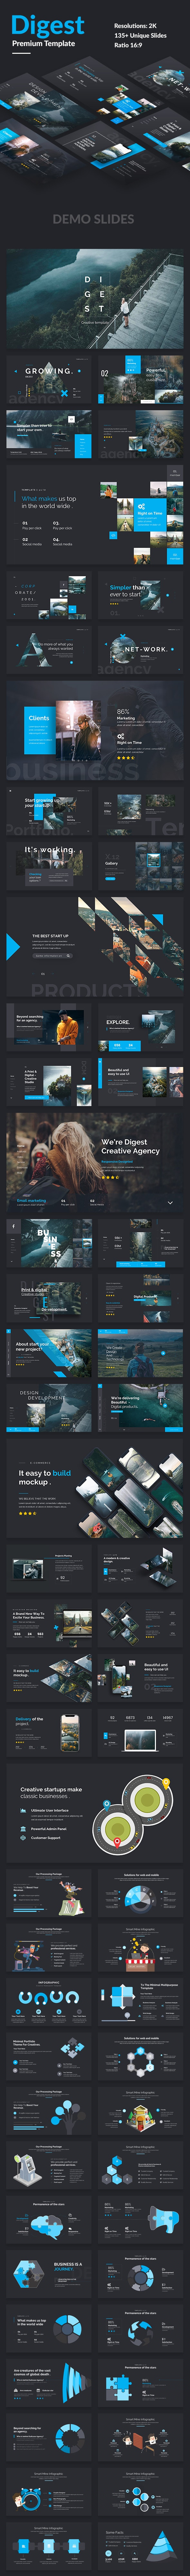 Digest Premium Project Powerpoint Template - Creative PowerPoint Templates